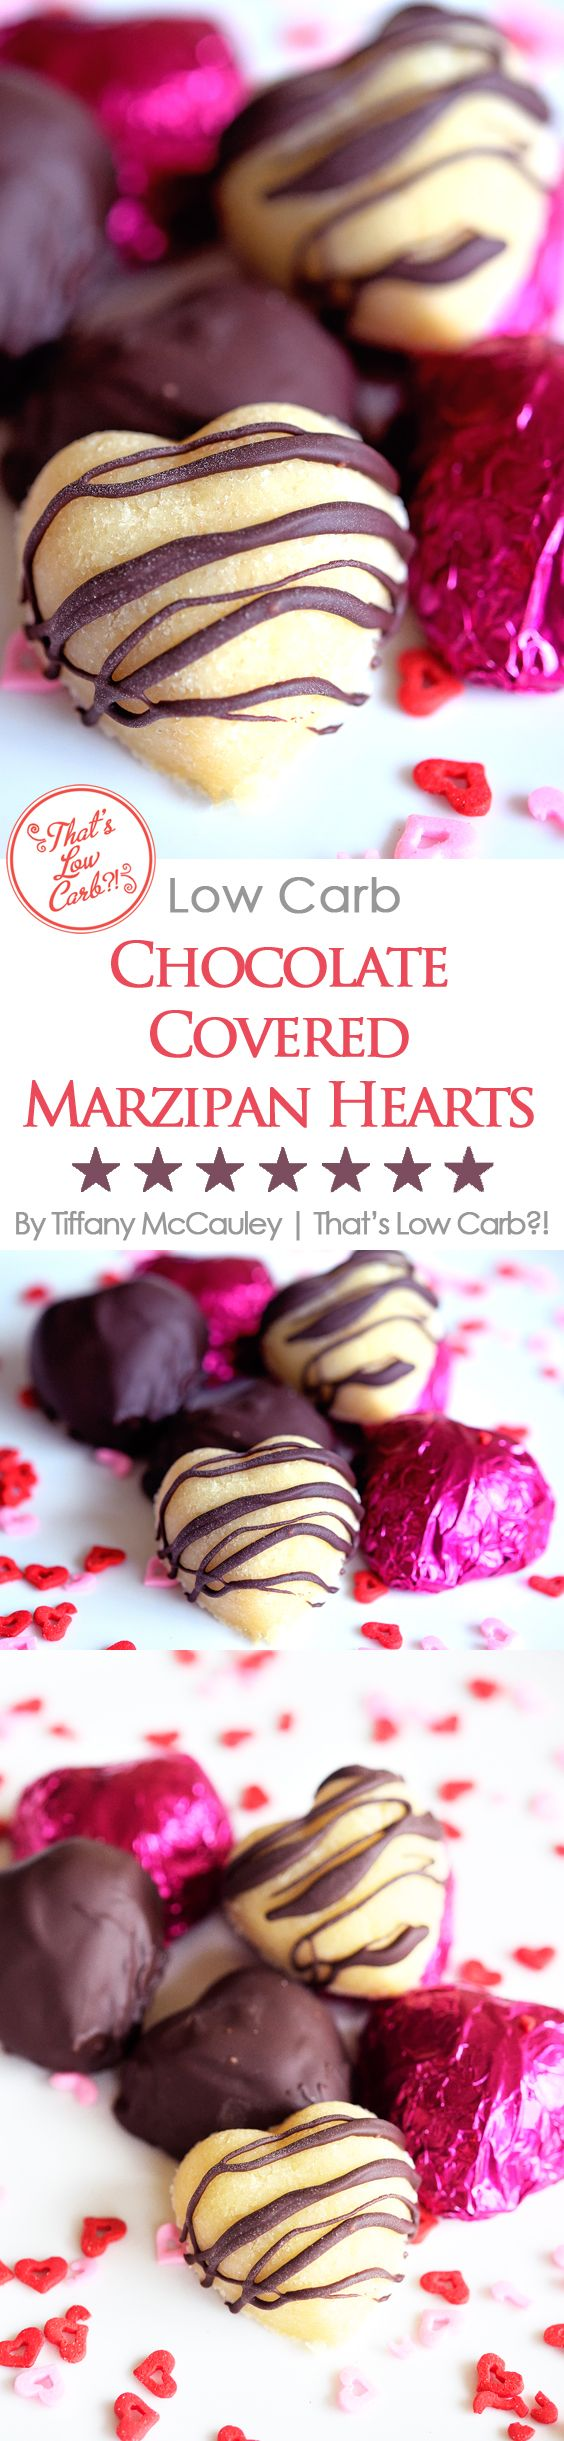 Low Carb Recipes | Low Carb Valentine's Day | Low Carb Marzipan | Low Carb Chocoalte | Low Carb Candy Recipes | Valentines Recipes